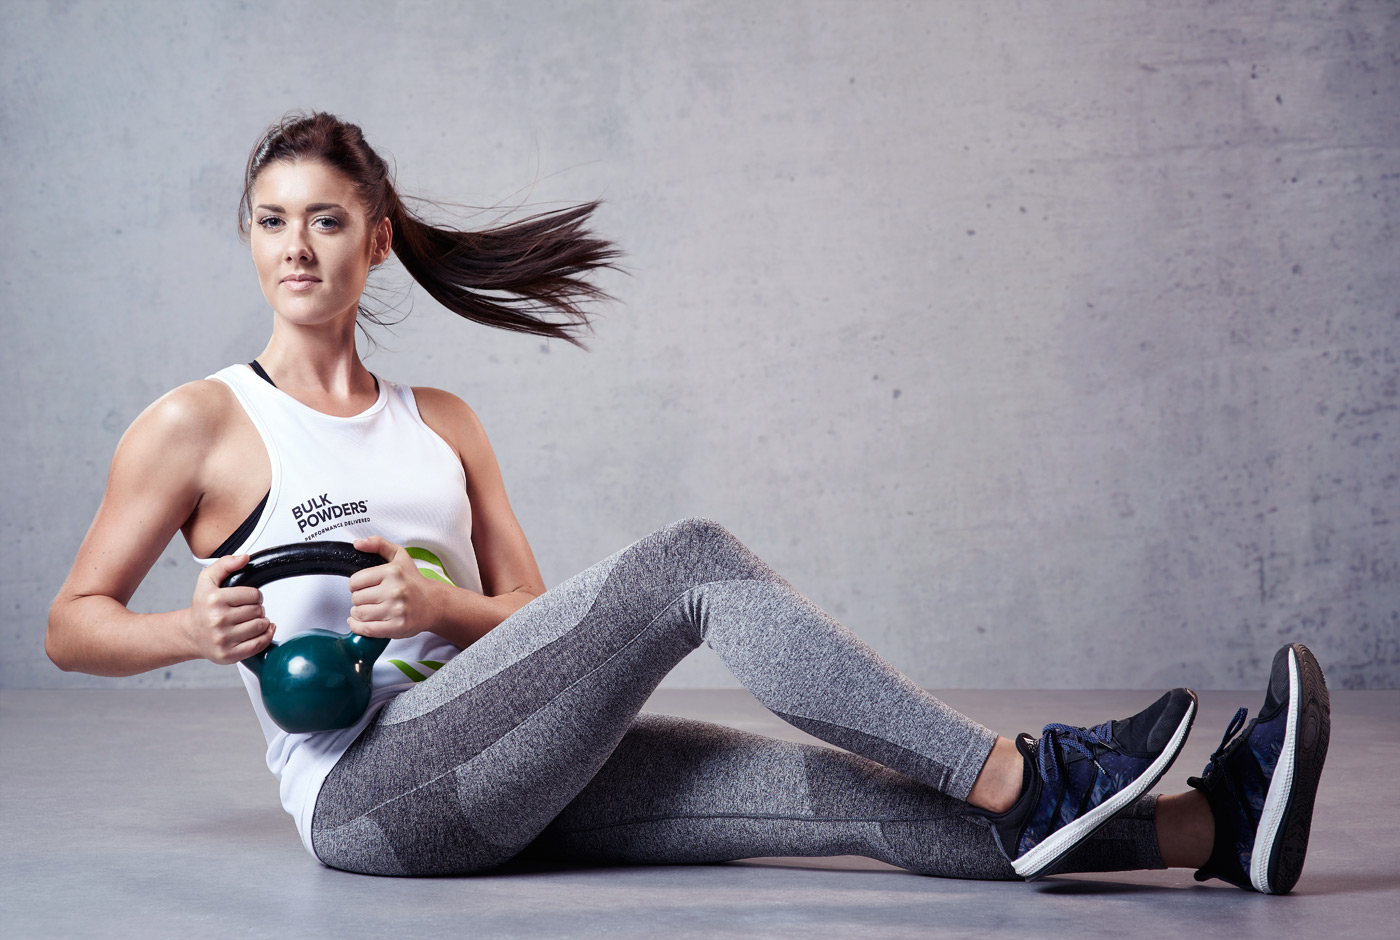 Female athlete working out with a kettlebell